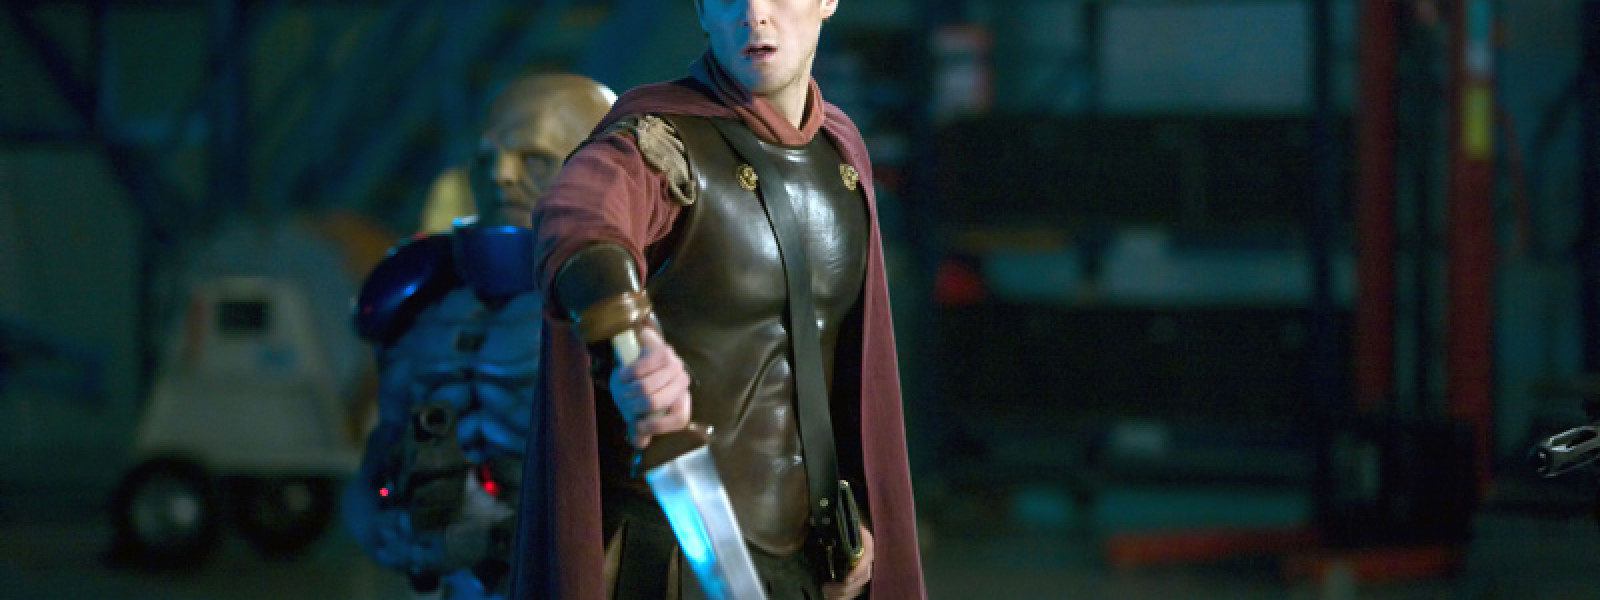 Rory hold on to his sword